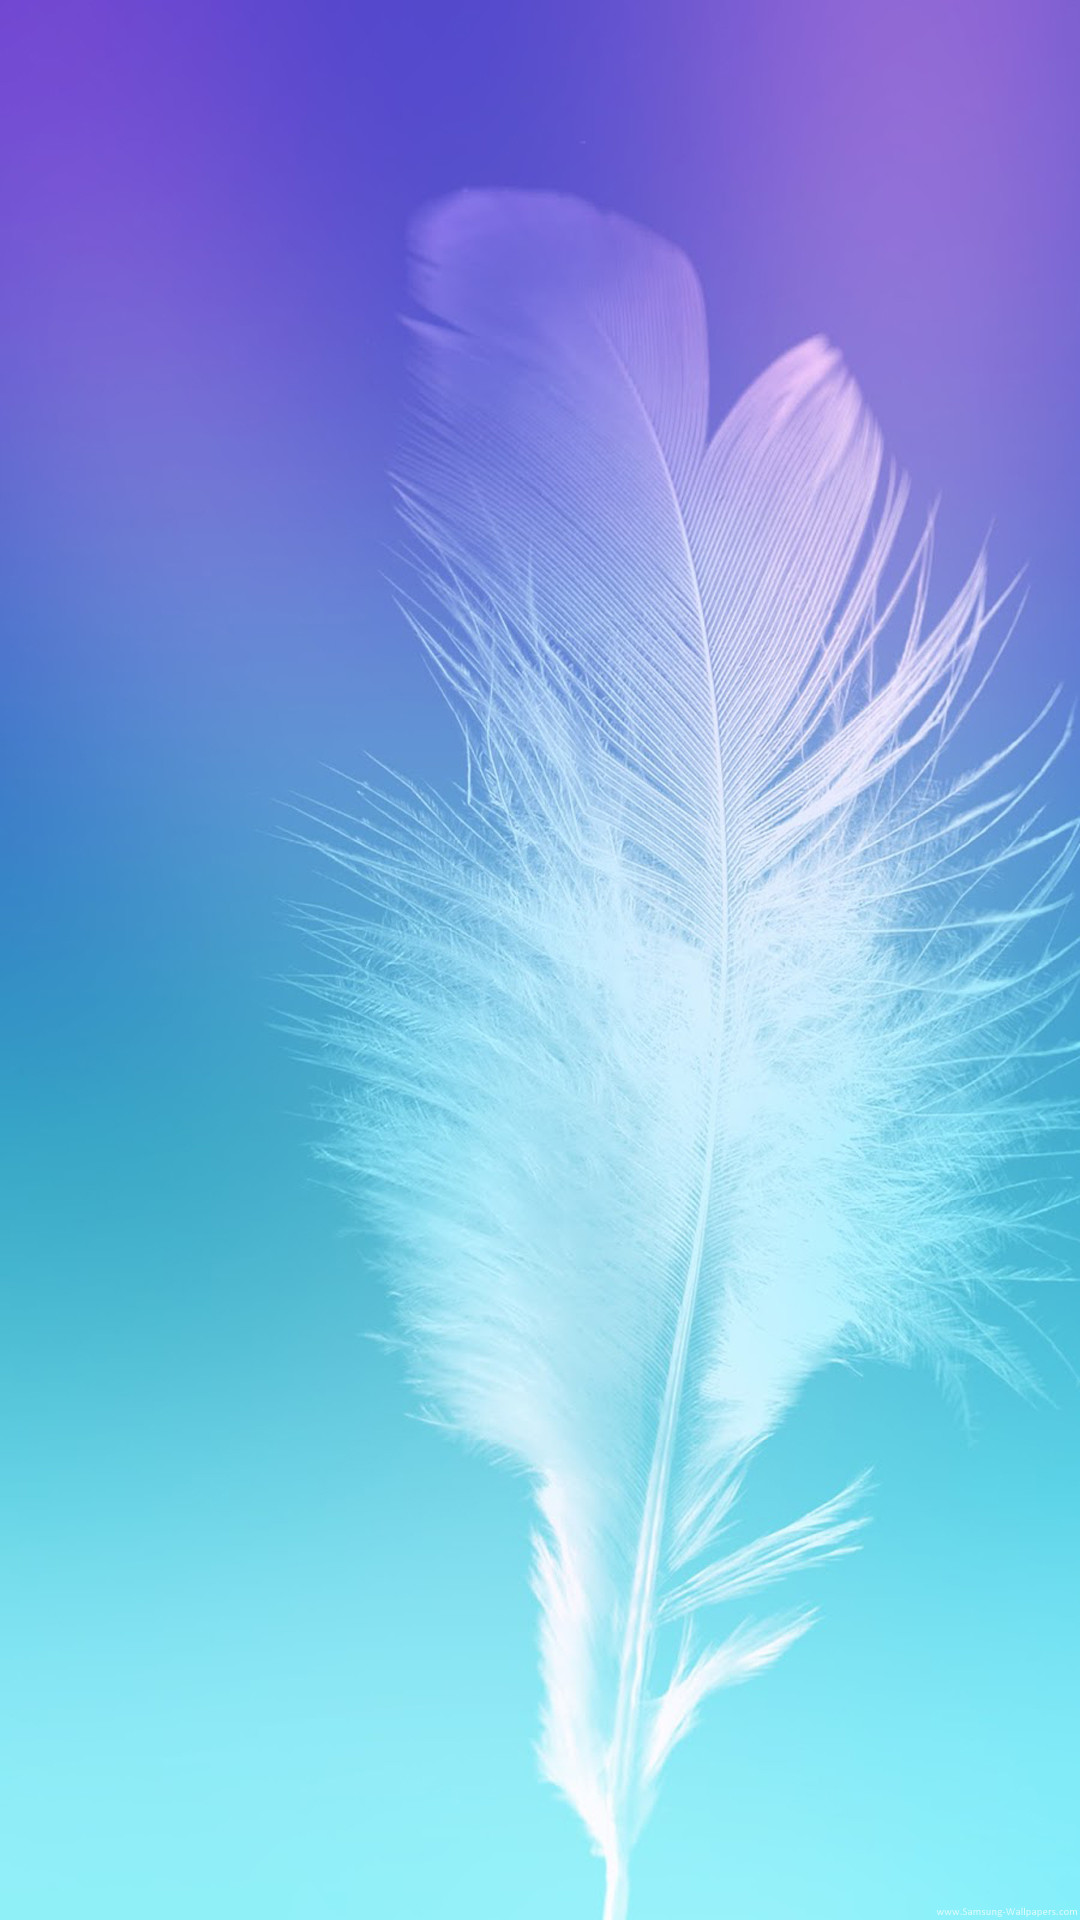 1080x1920 Blue HD Wallpaper 1080p For Android Phones With 5 Inch Display